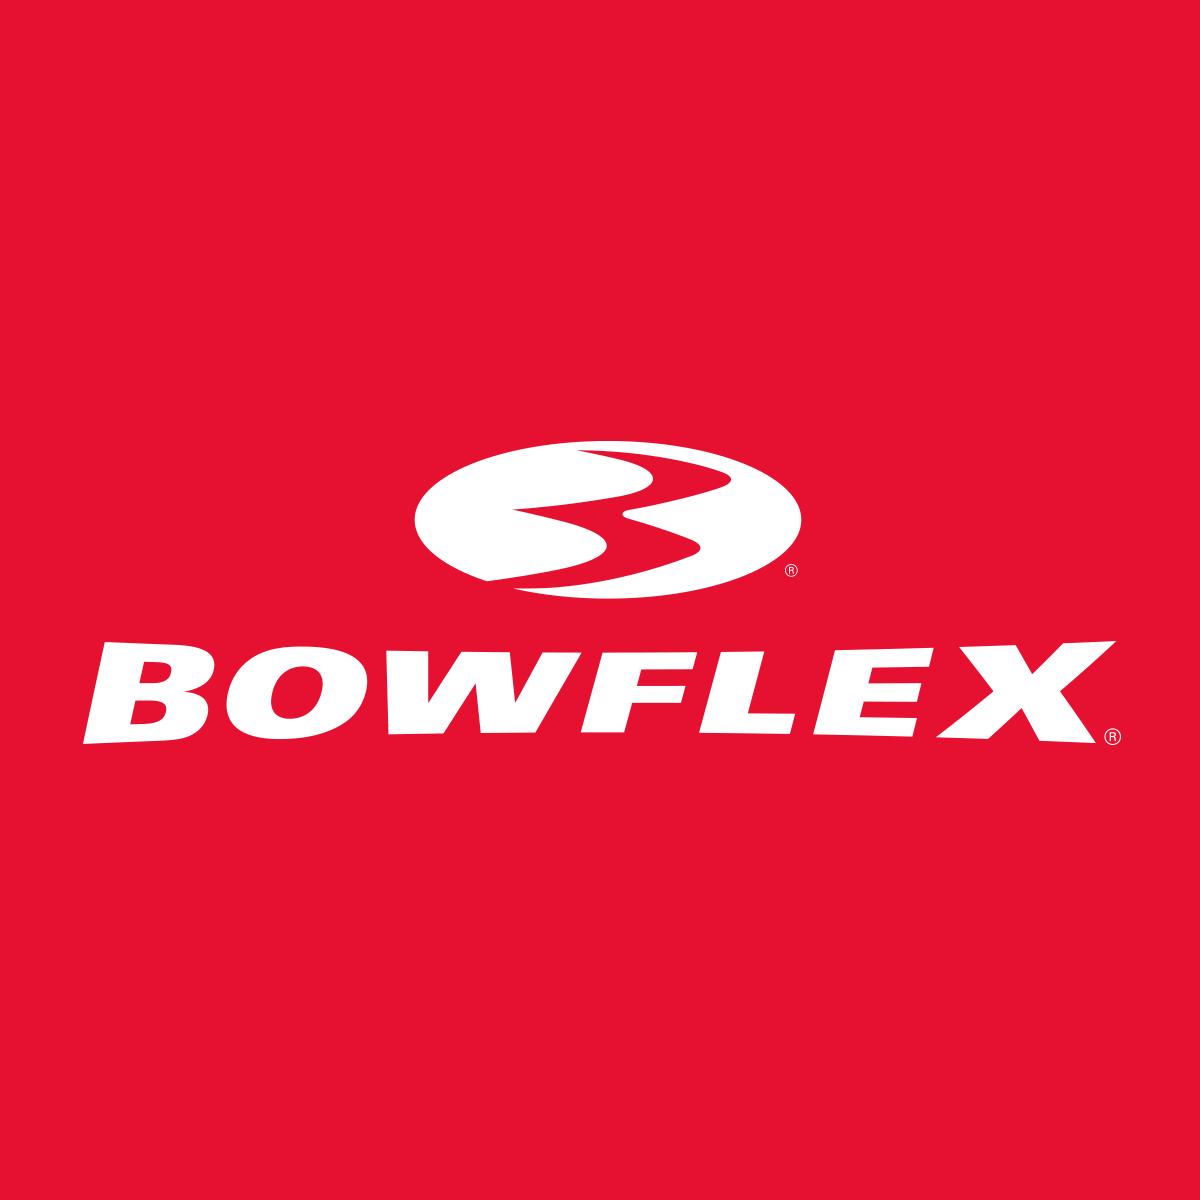 Bowflex Product Manuals Bowflex In the portal, you can find owner's and repair manuals for a wide variety of models. bowflex product manuals bowflex